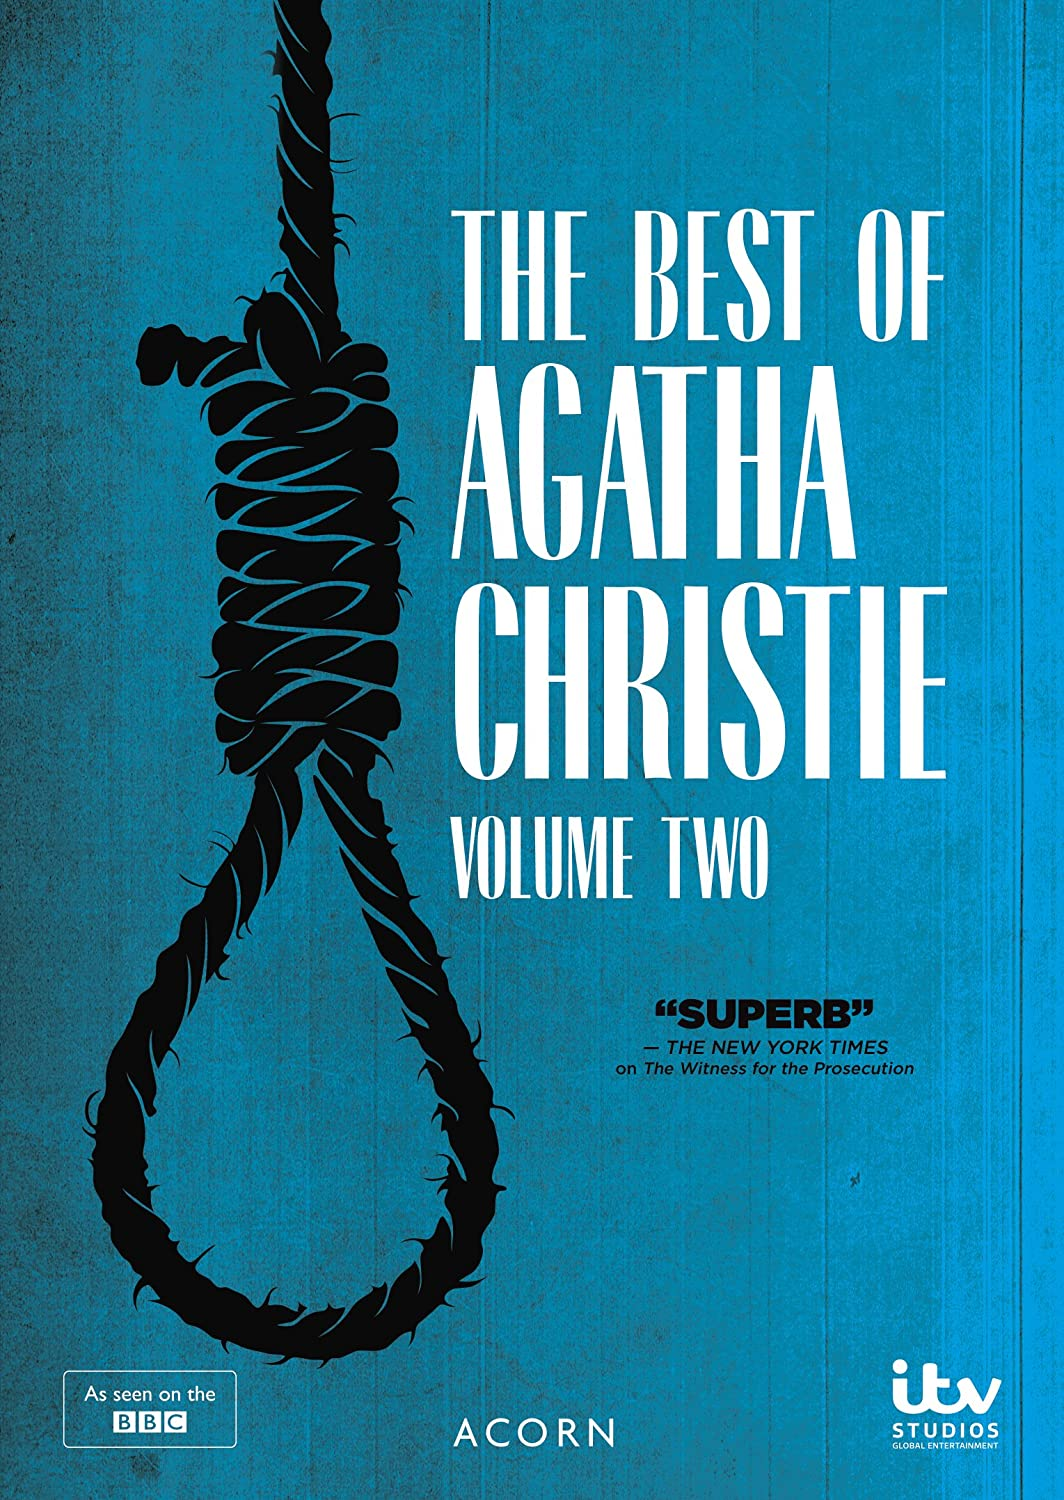 The Best of Agatha Christie: Volume 2